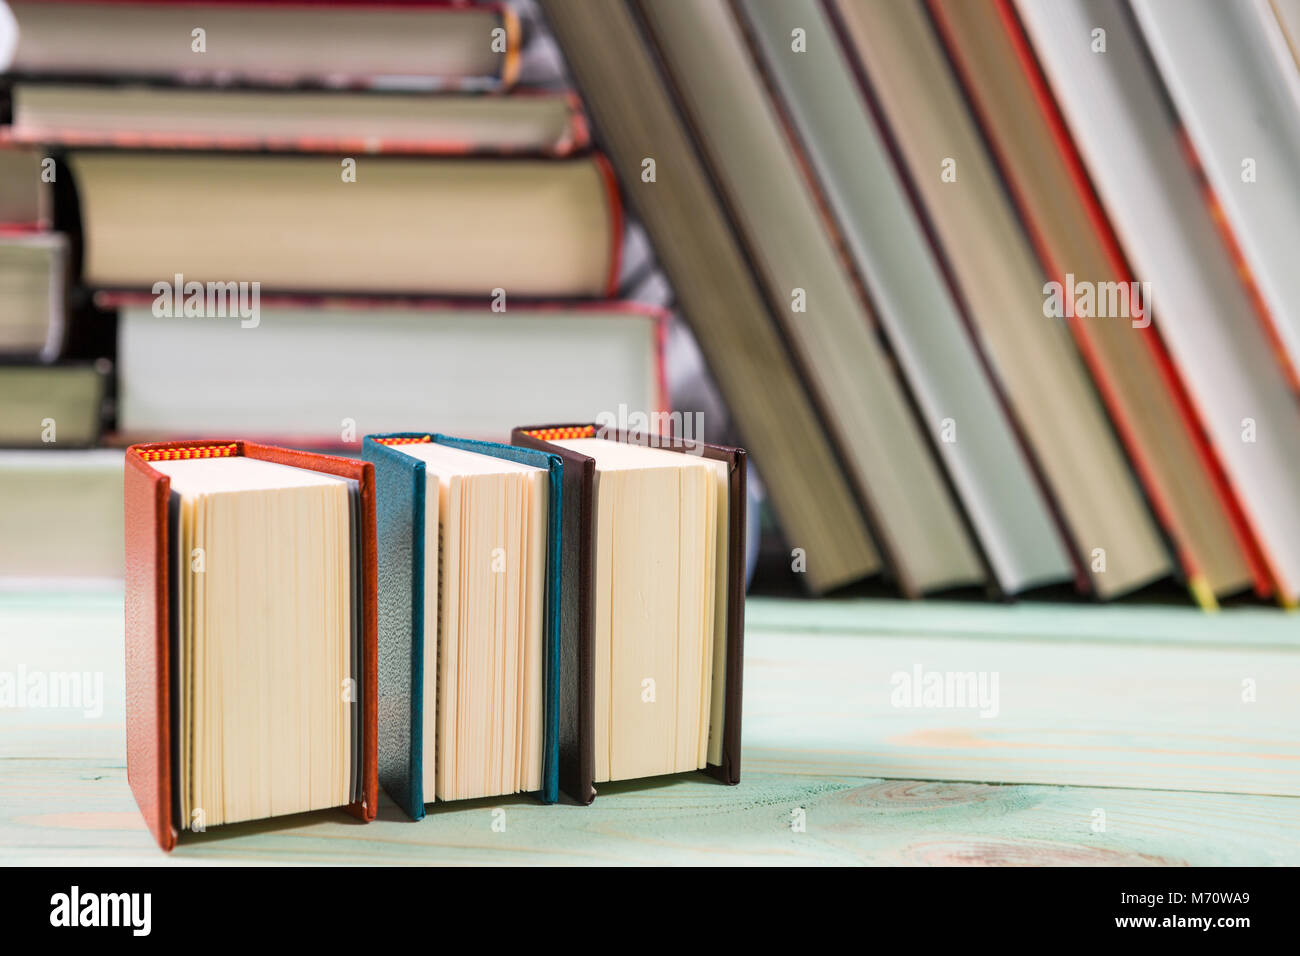 Pile of books on wooden background - Stock Image